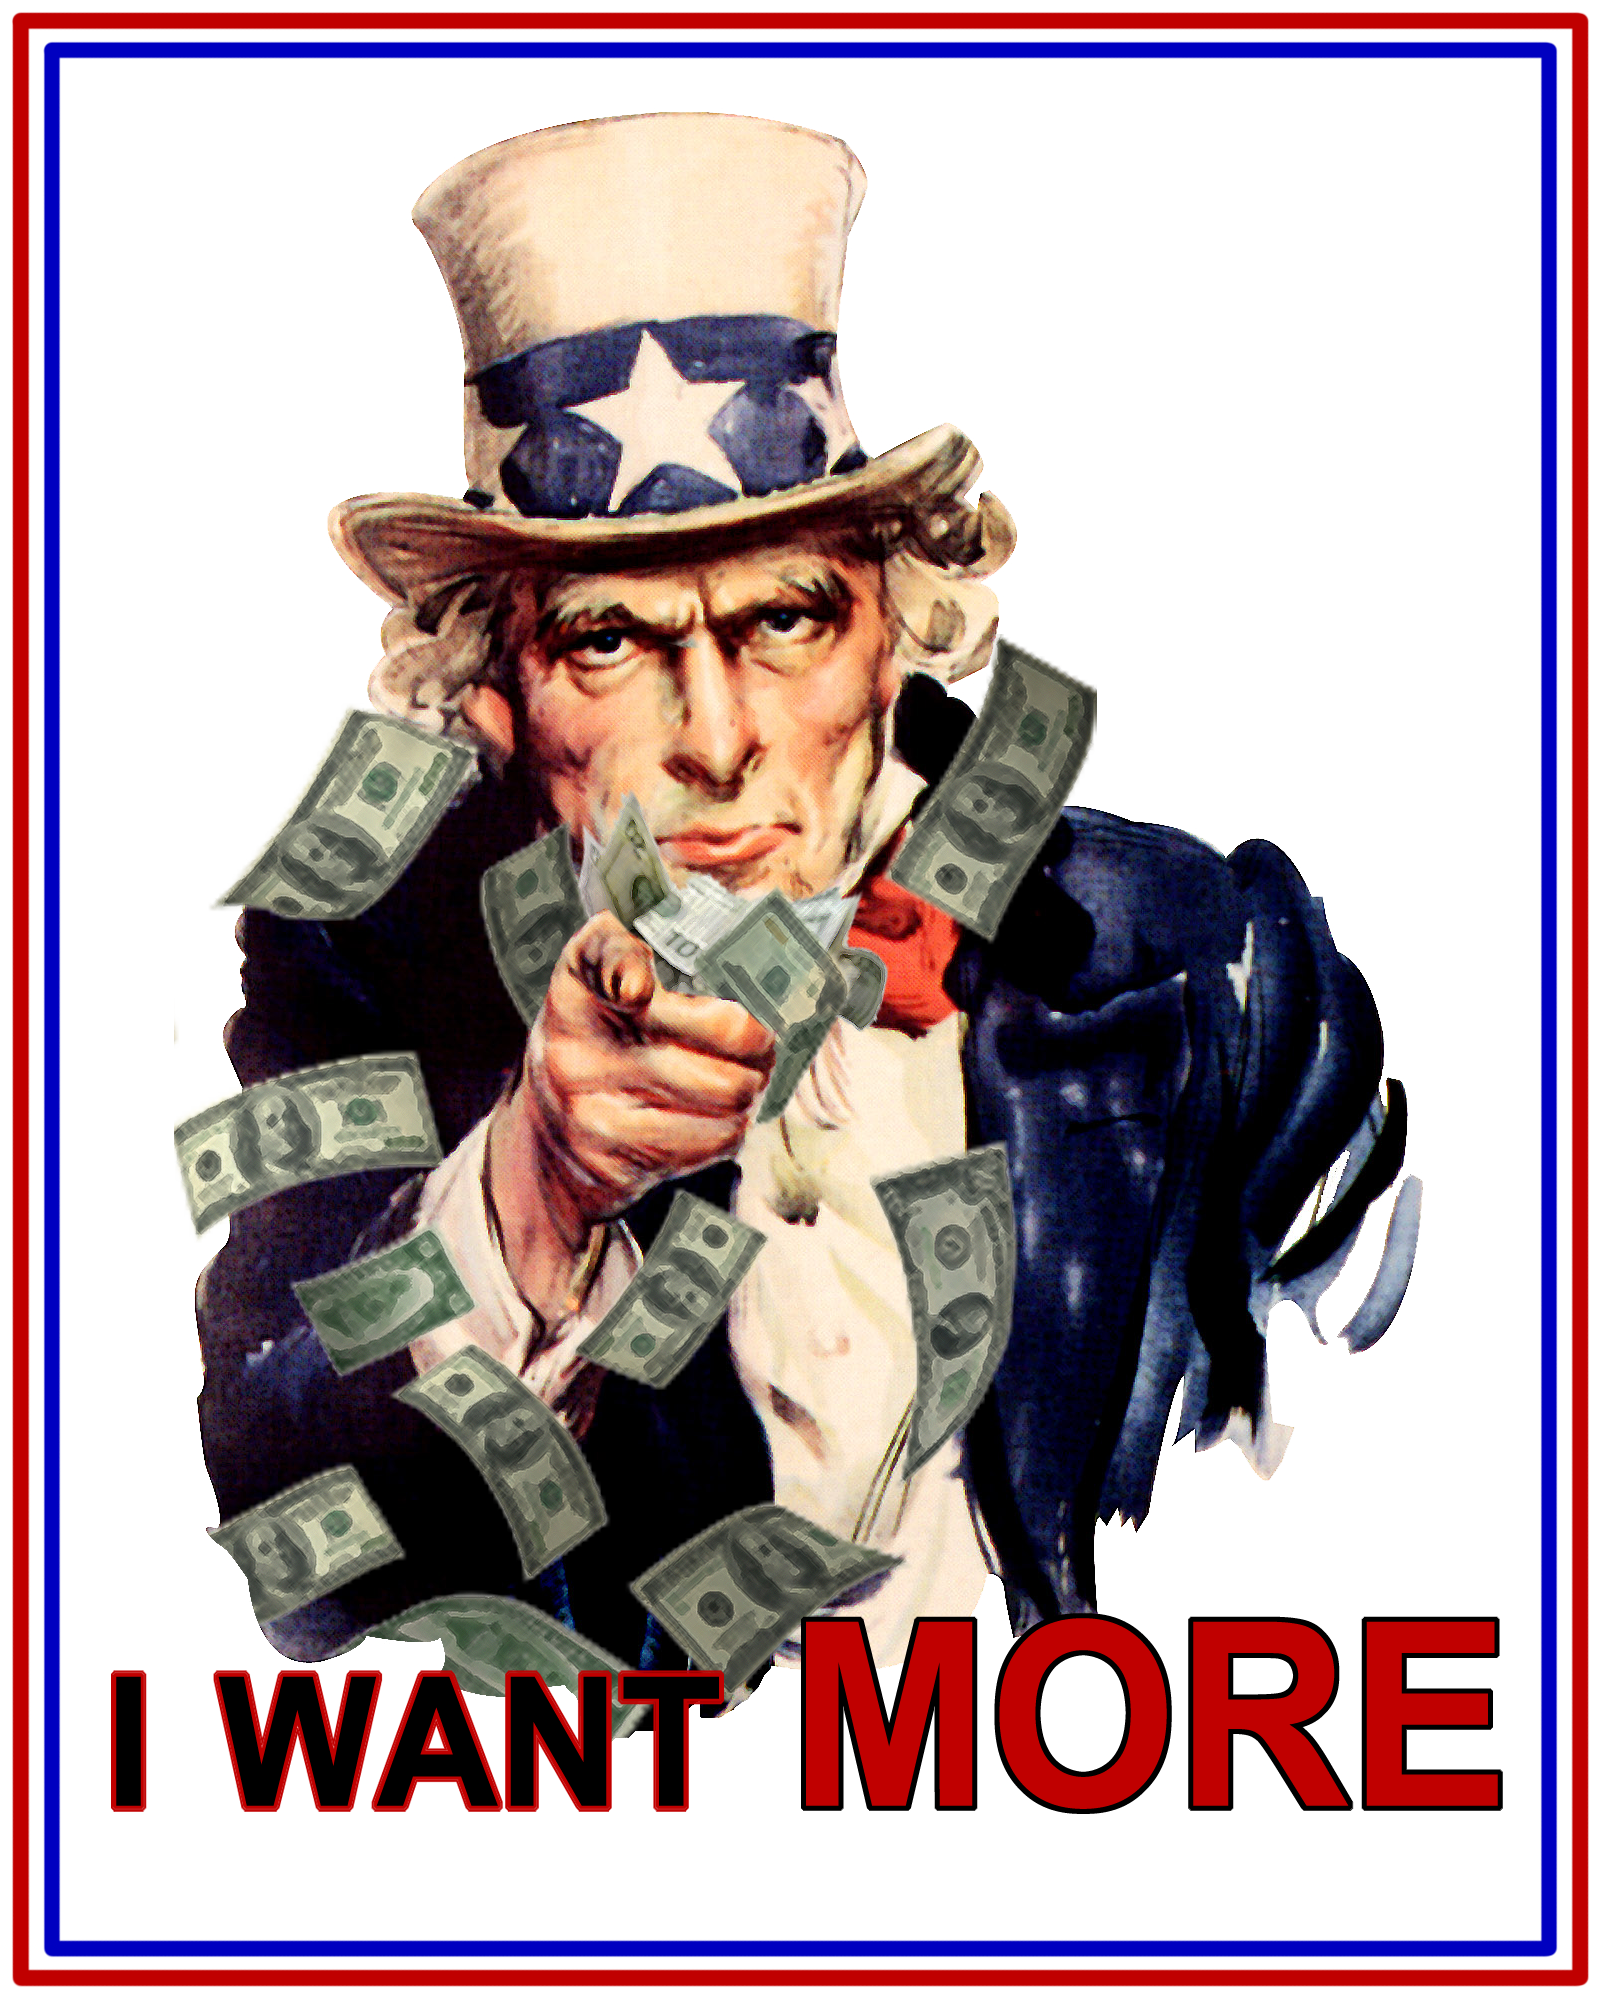 Free clipart uncle sam taking money banner freeuse library I Want MORE <– Uncle Sam | The Graphic Details banner freeuse library